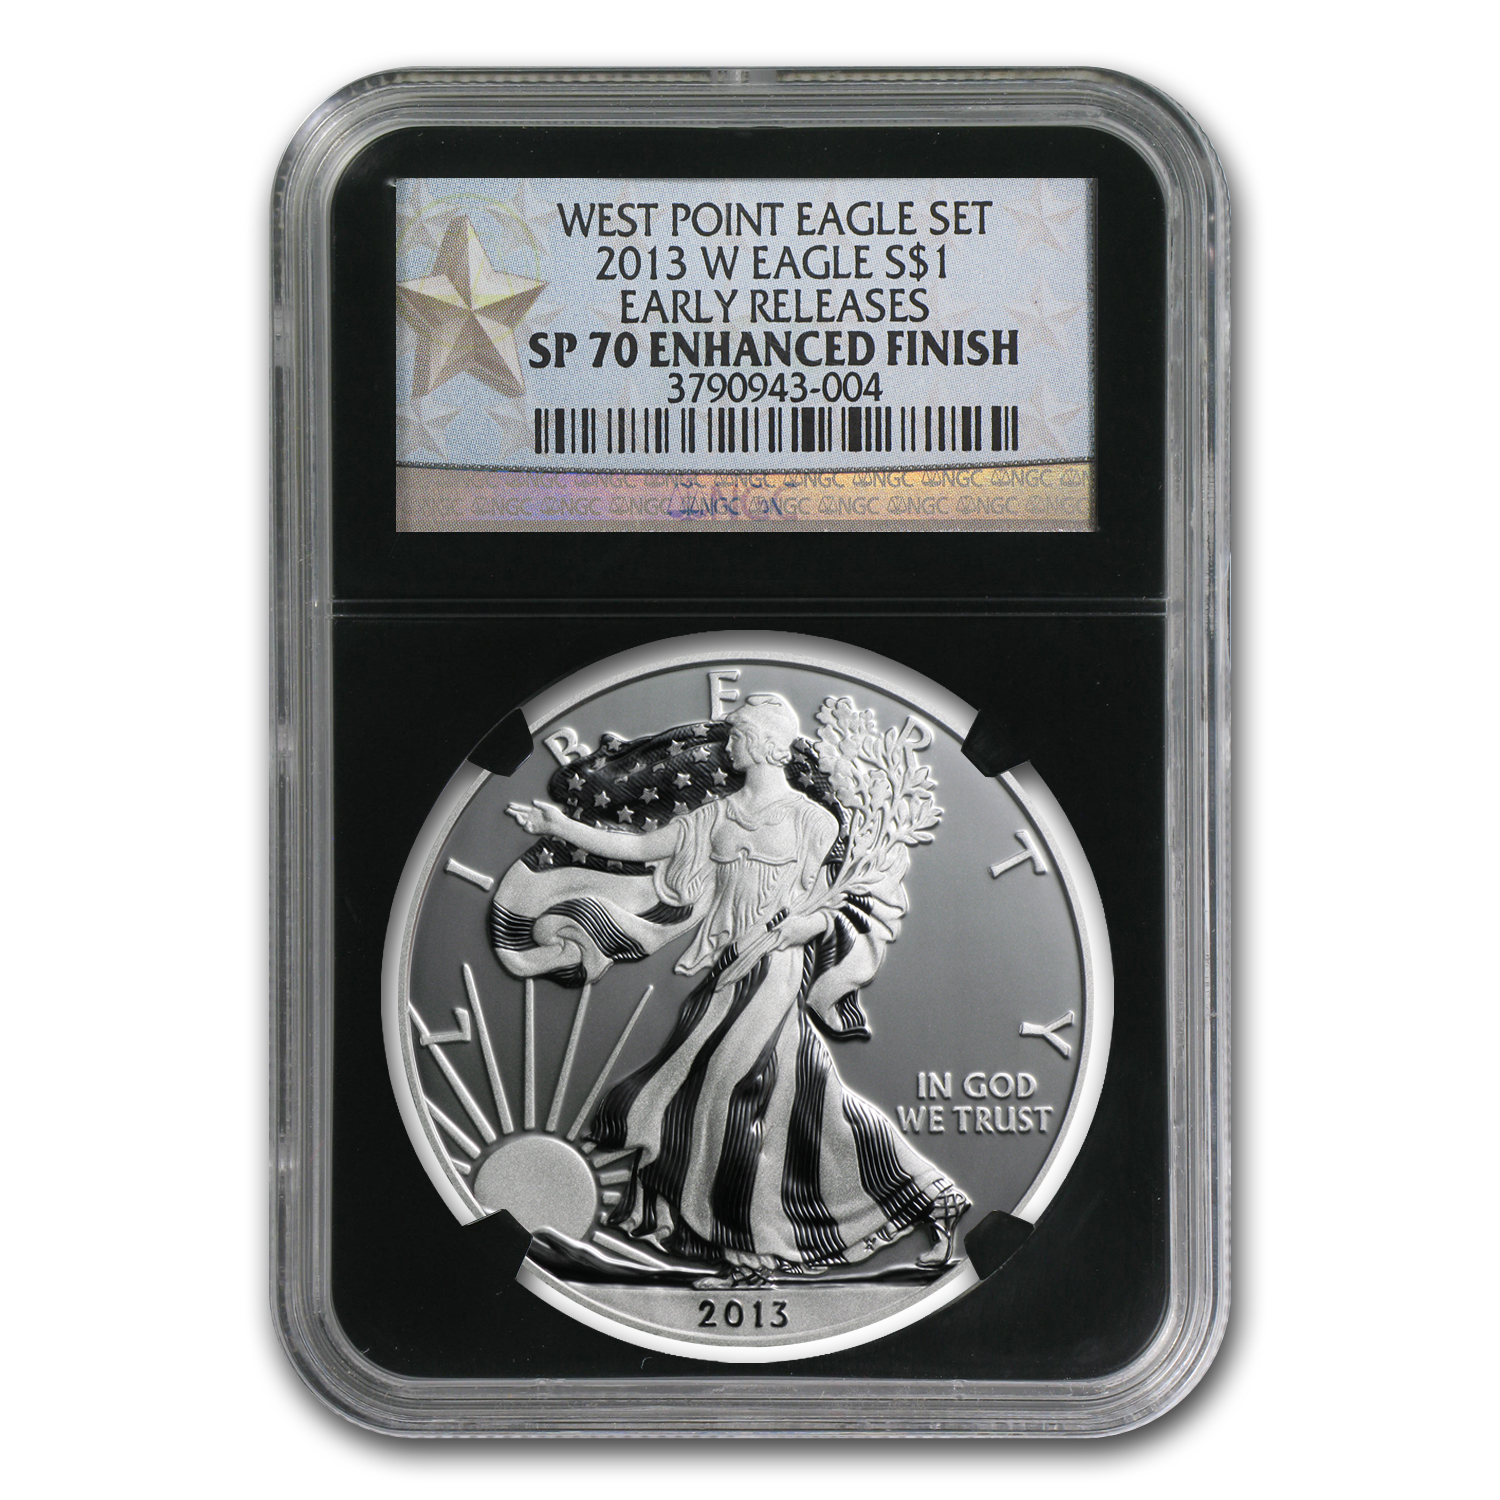 2013-W Silver American Eagle SP-70 NGC (ER, Enhanced Finish)